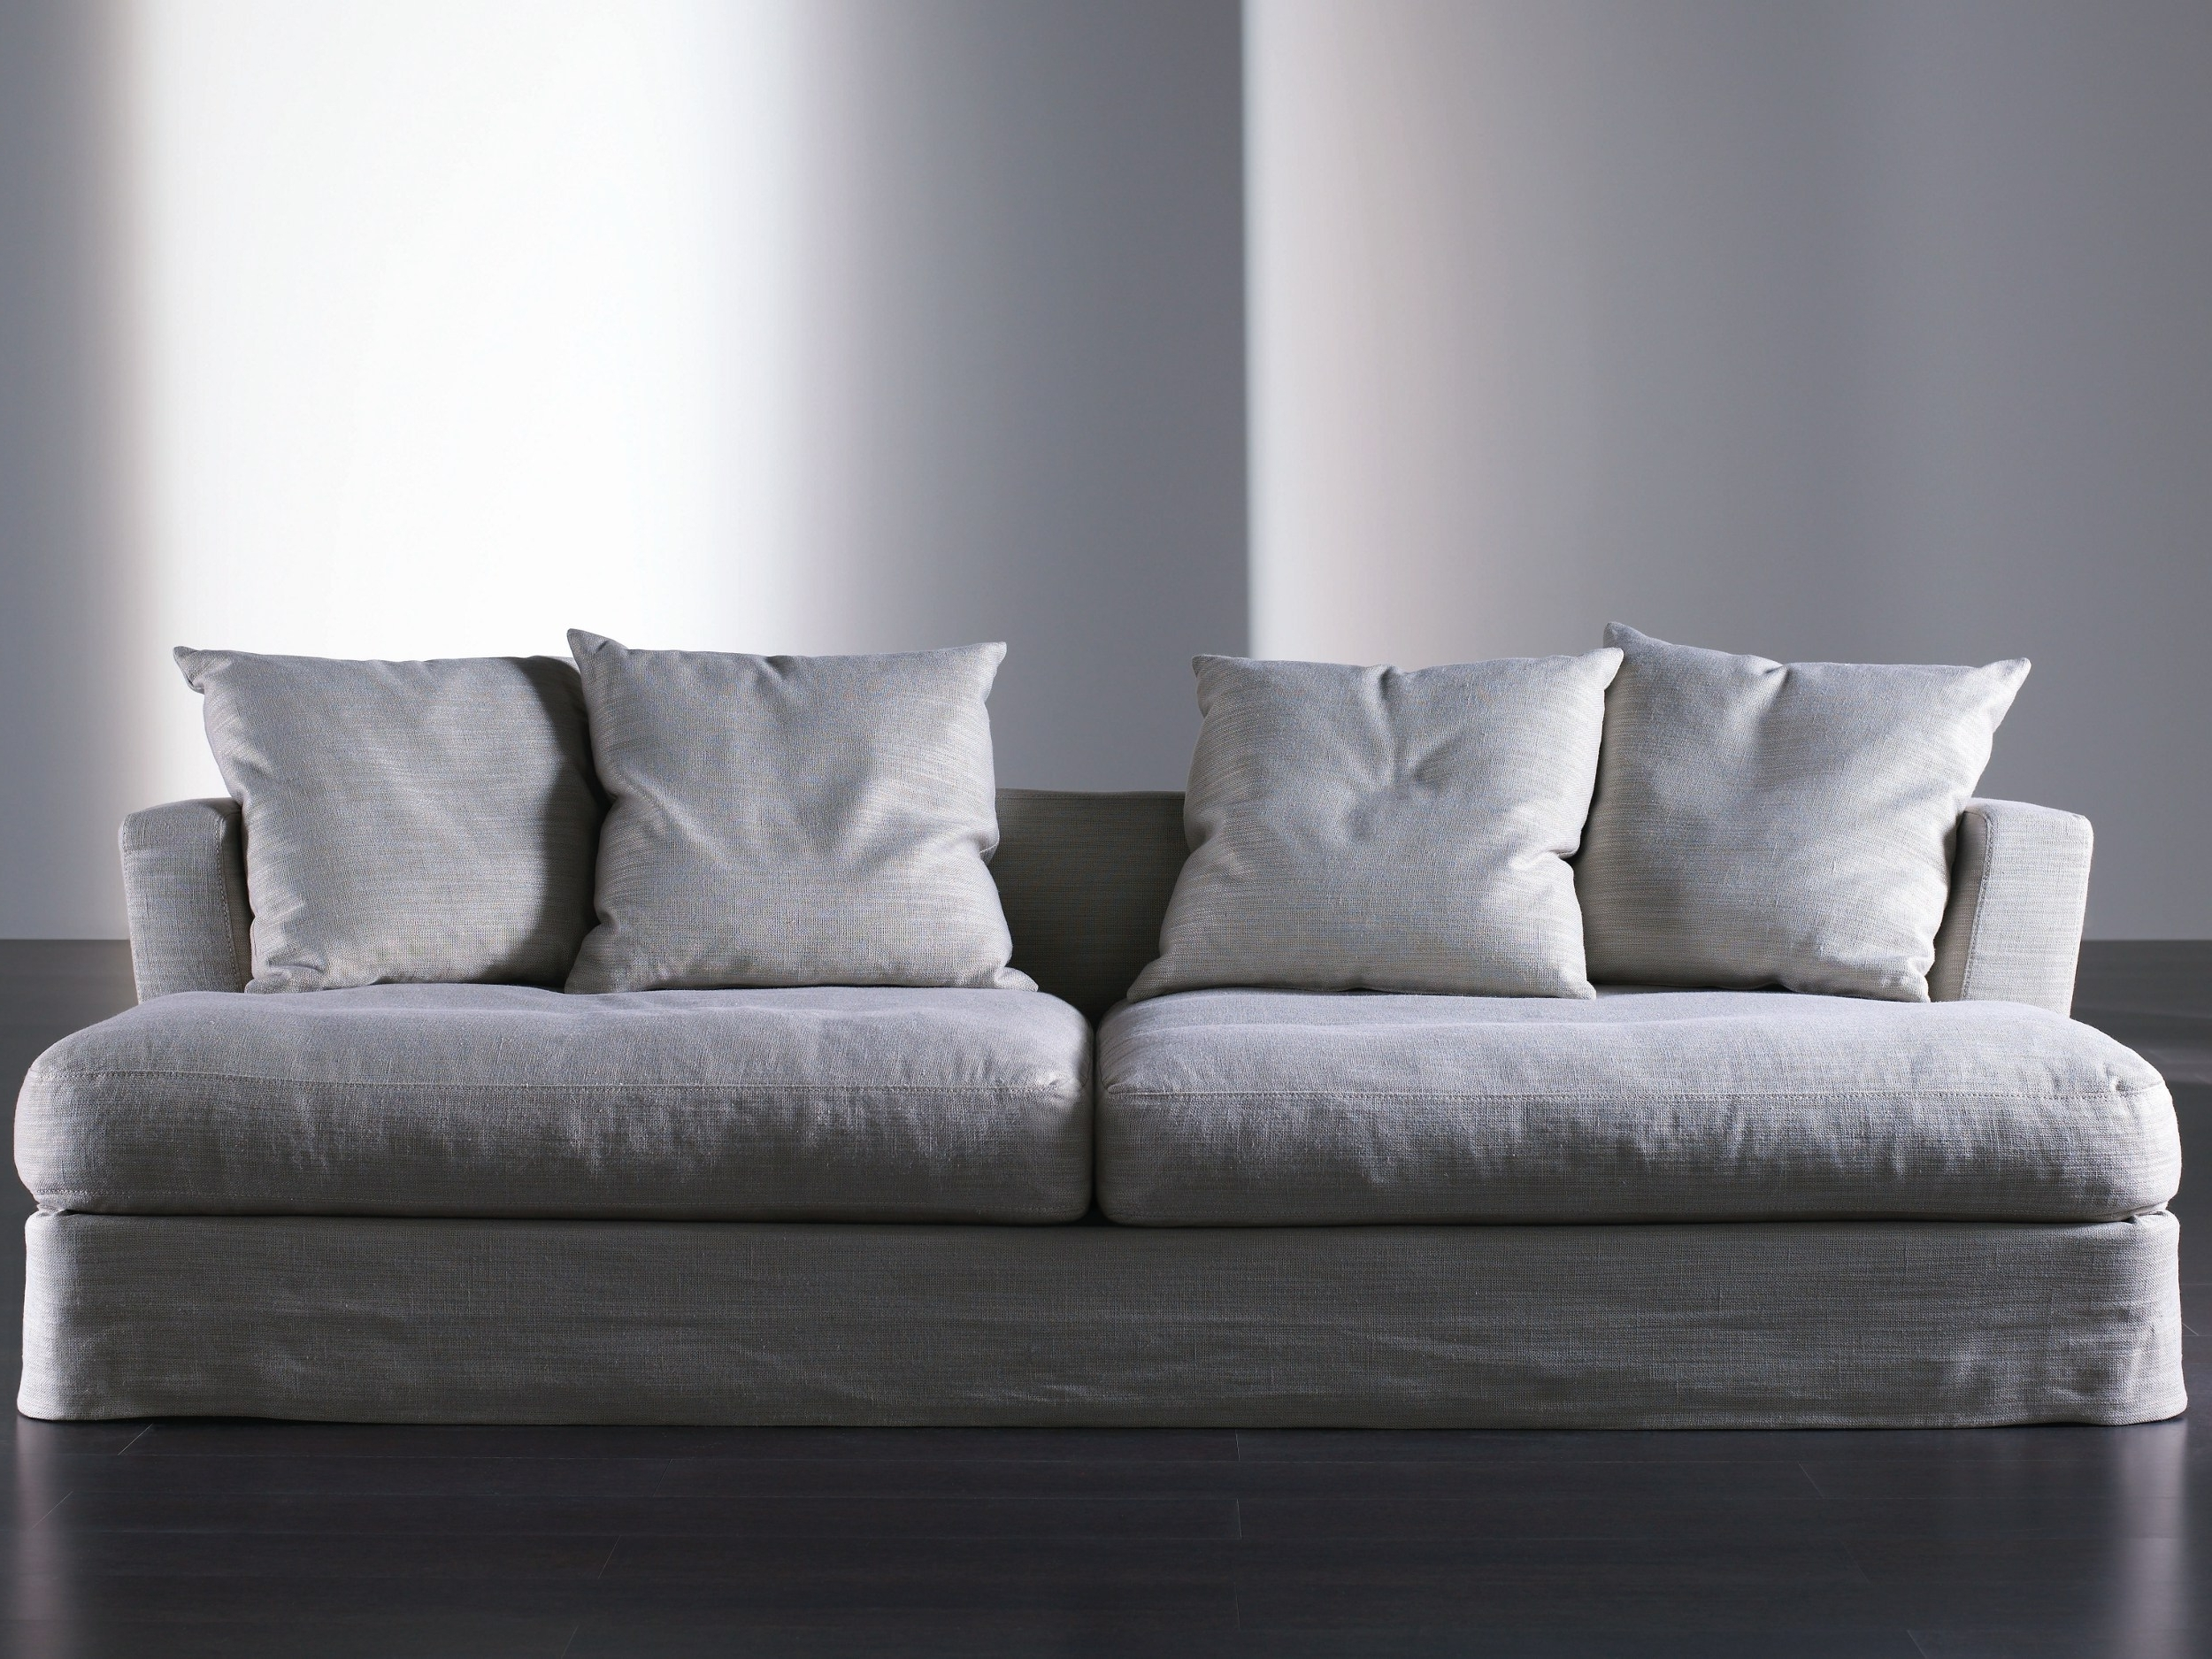 Sofas With Removable Cover Within Most Current Upholstered Sofa With Removable Cover Keaton Ghost – Meridiani (View 9 of 15)